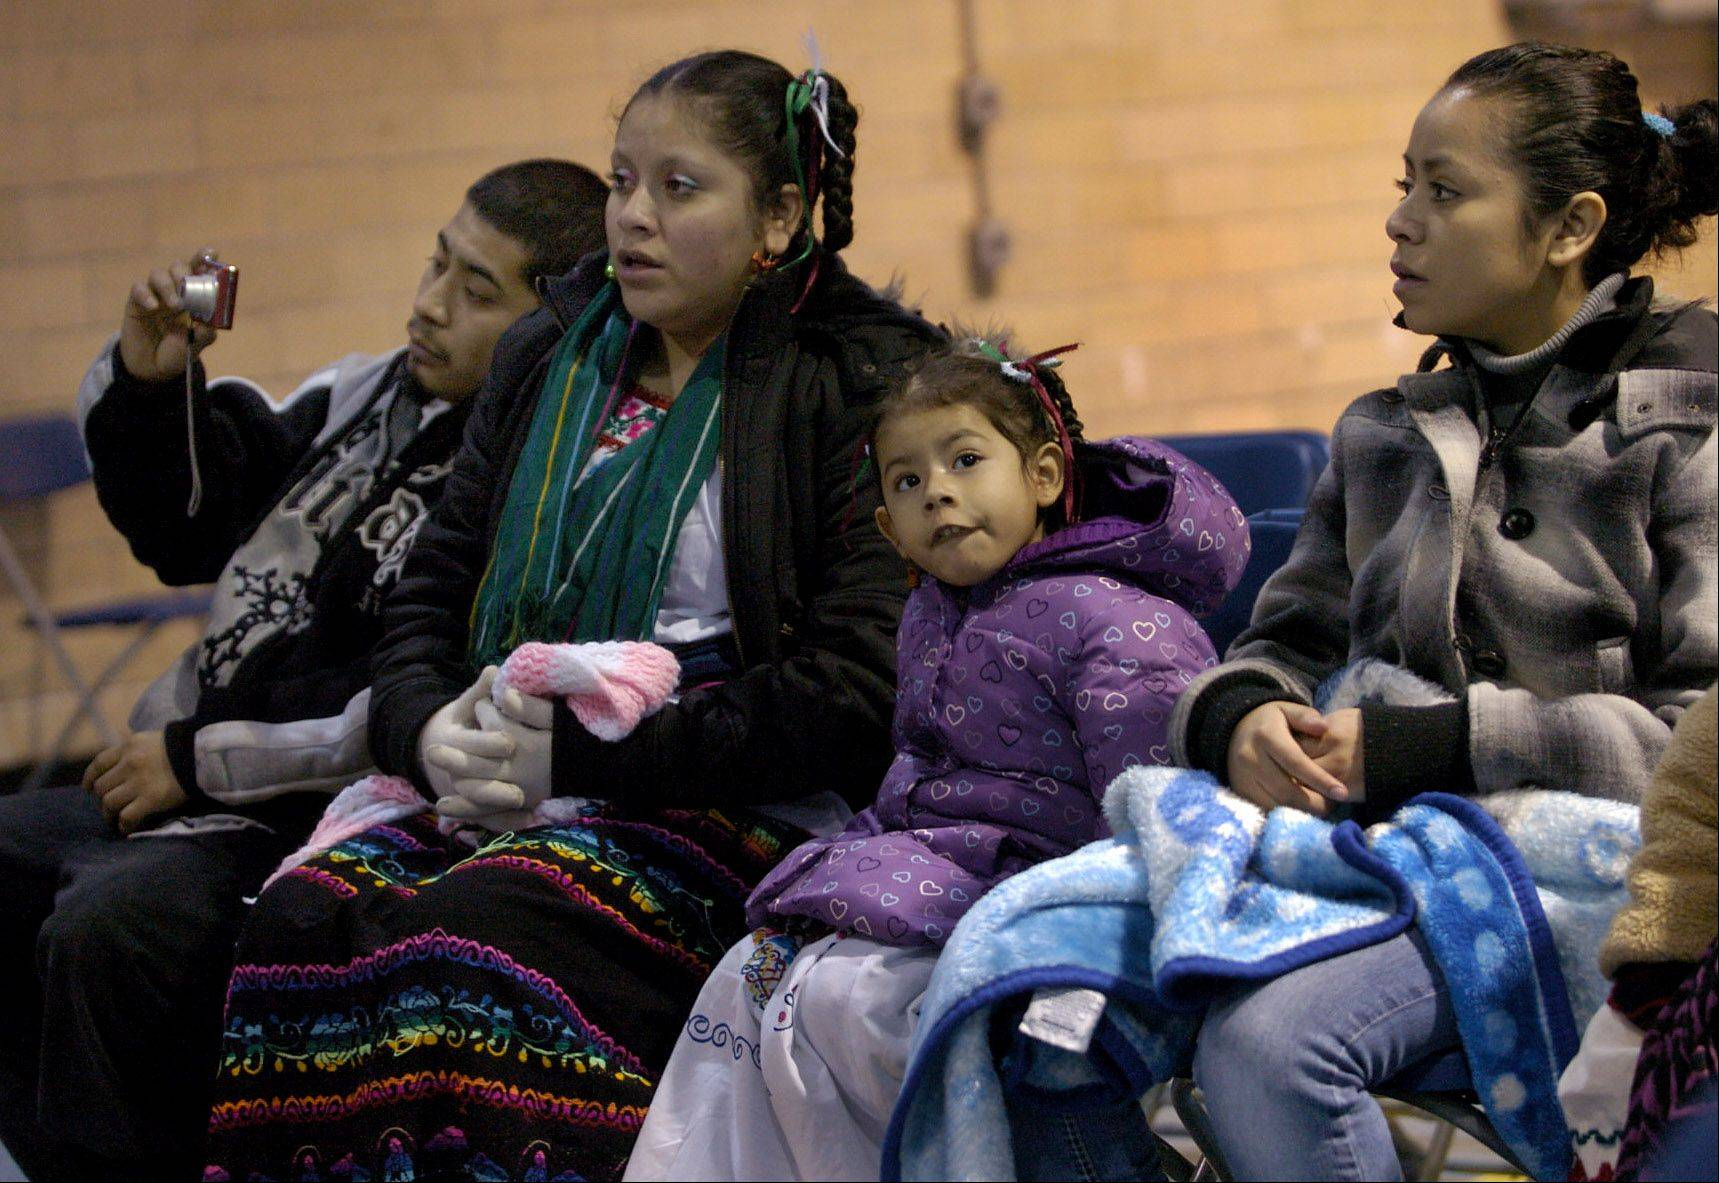 A family attends 9 a.m. Mass at the Shrine of Our Lady of Guadalupe in Des Plaines.